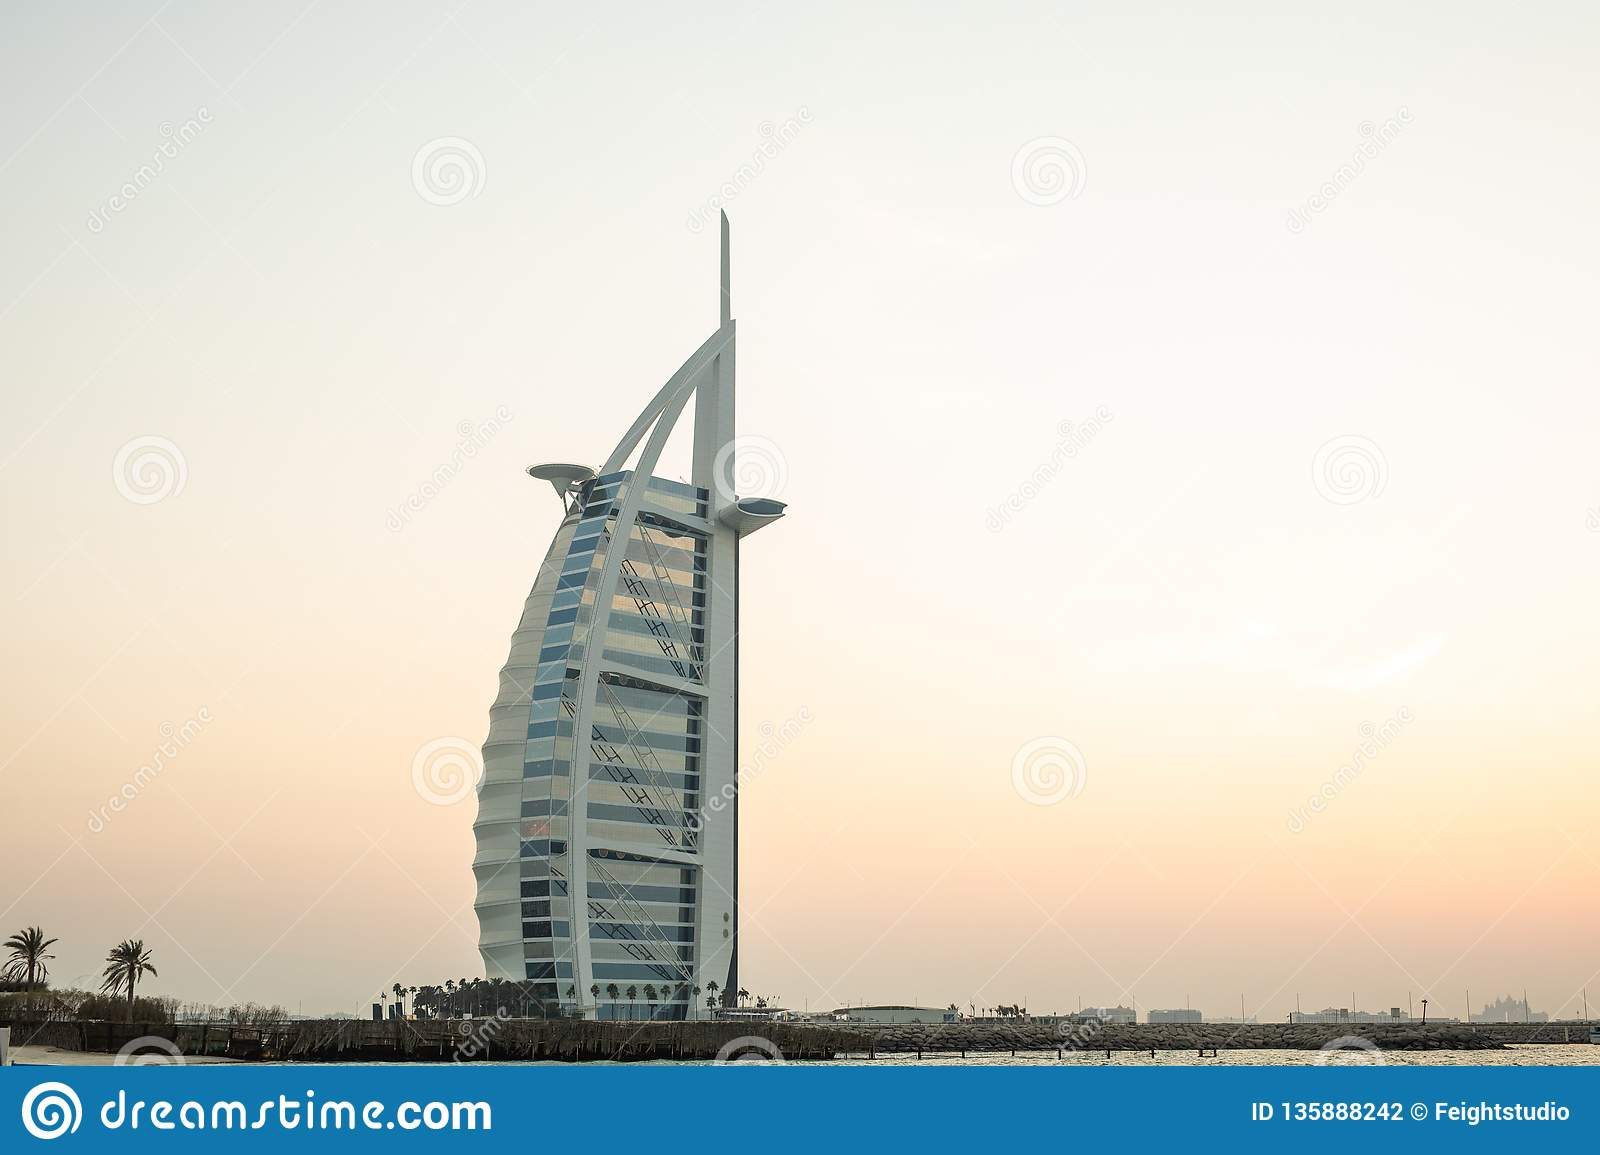 Burj Al Arab Hotel In Dubai Uae Burj Al Arab Is A Luxury 5 Star Hotel Built On An Artificial Island Stock Photo Image Of Arabian East 135888242